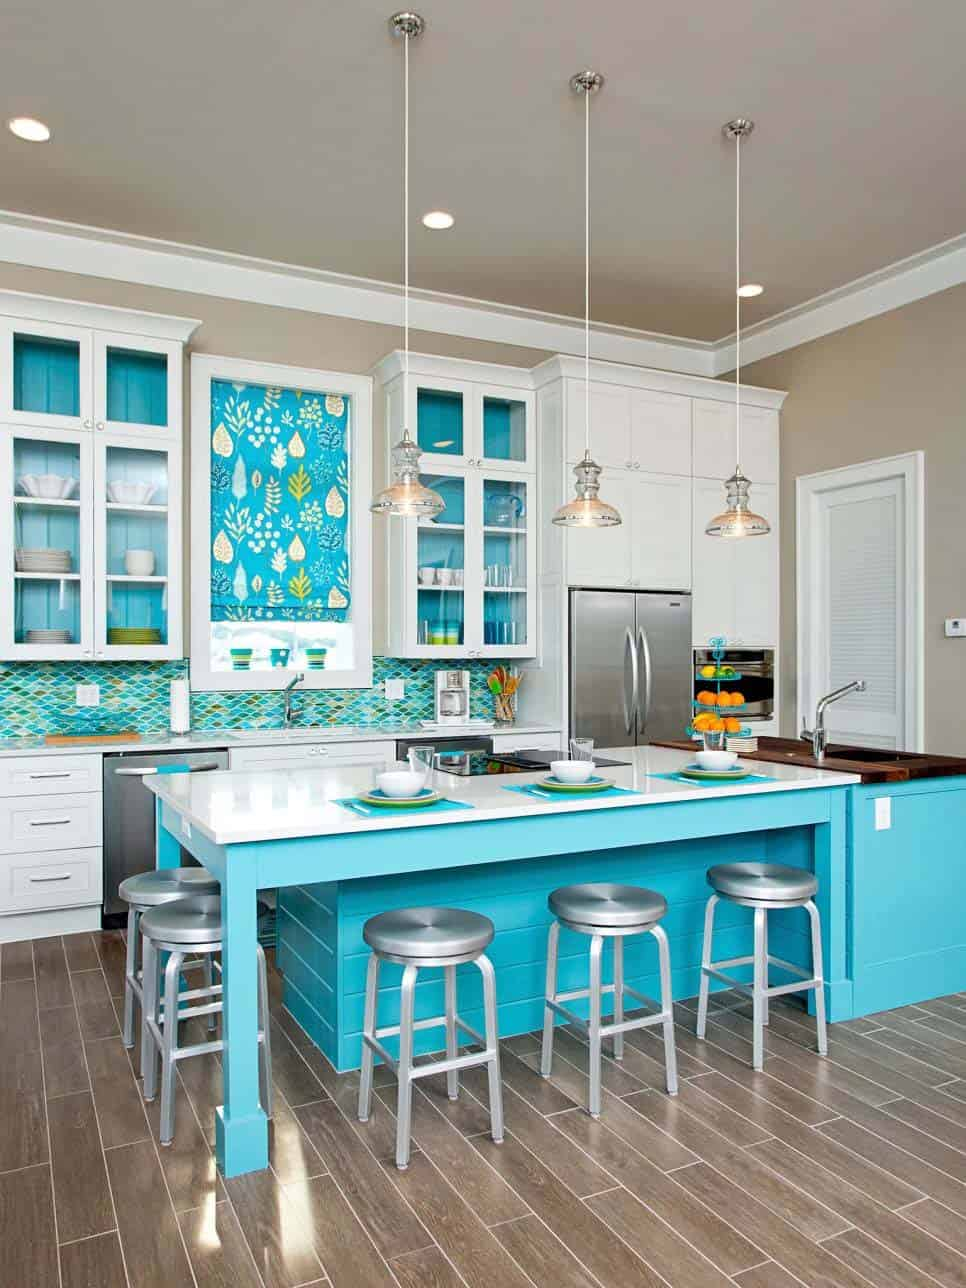 Kitchen Island Ideas-20-1 Kindesign